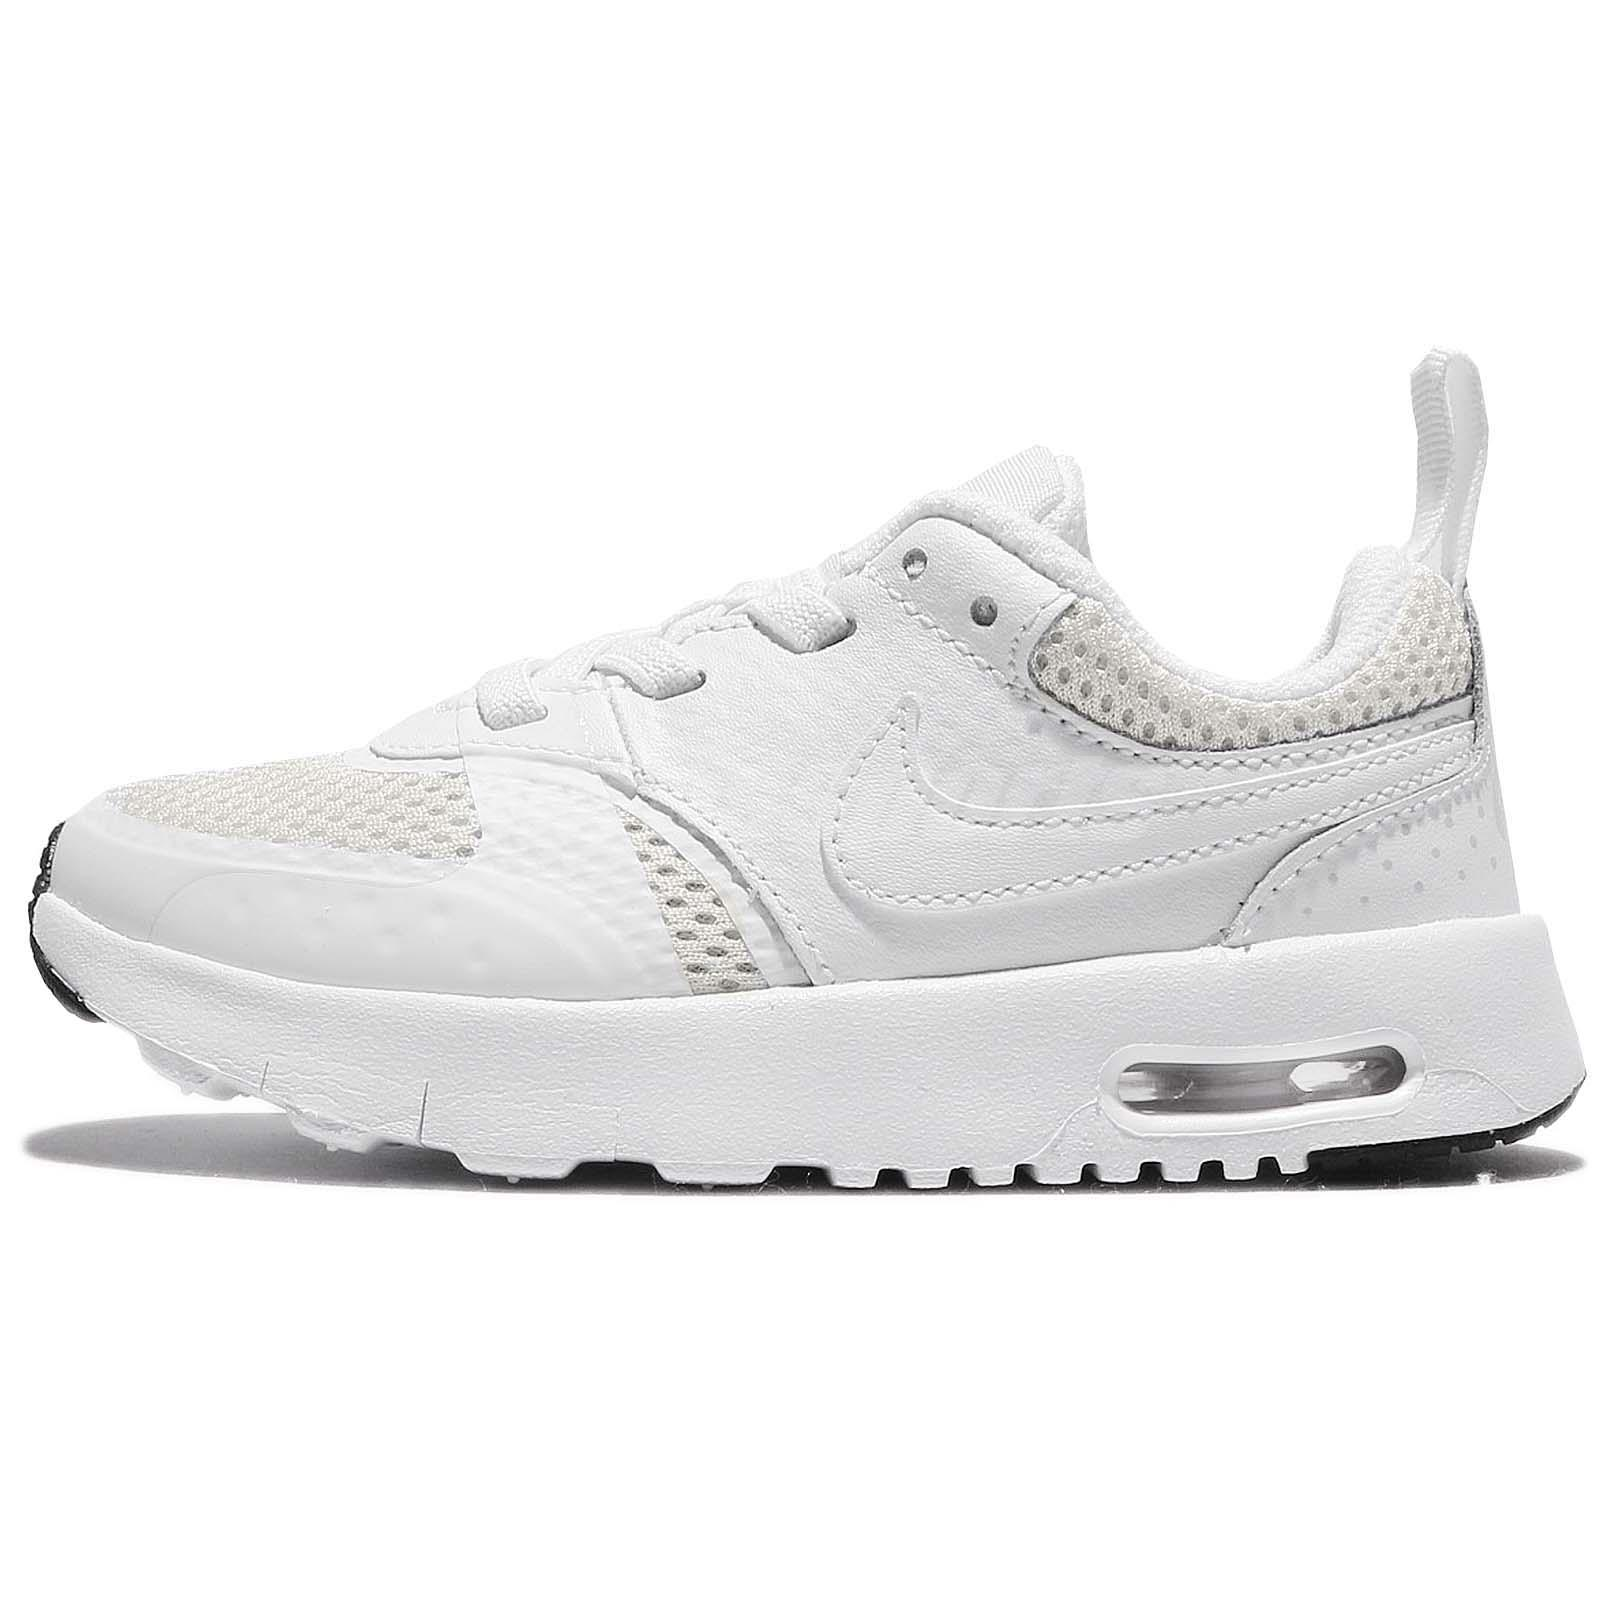 2daadc1abf2 Nike Air Max Vision TDE White Toddler Infant Baby Running Shoes 917860-100